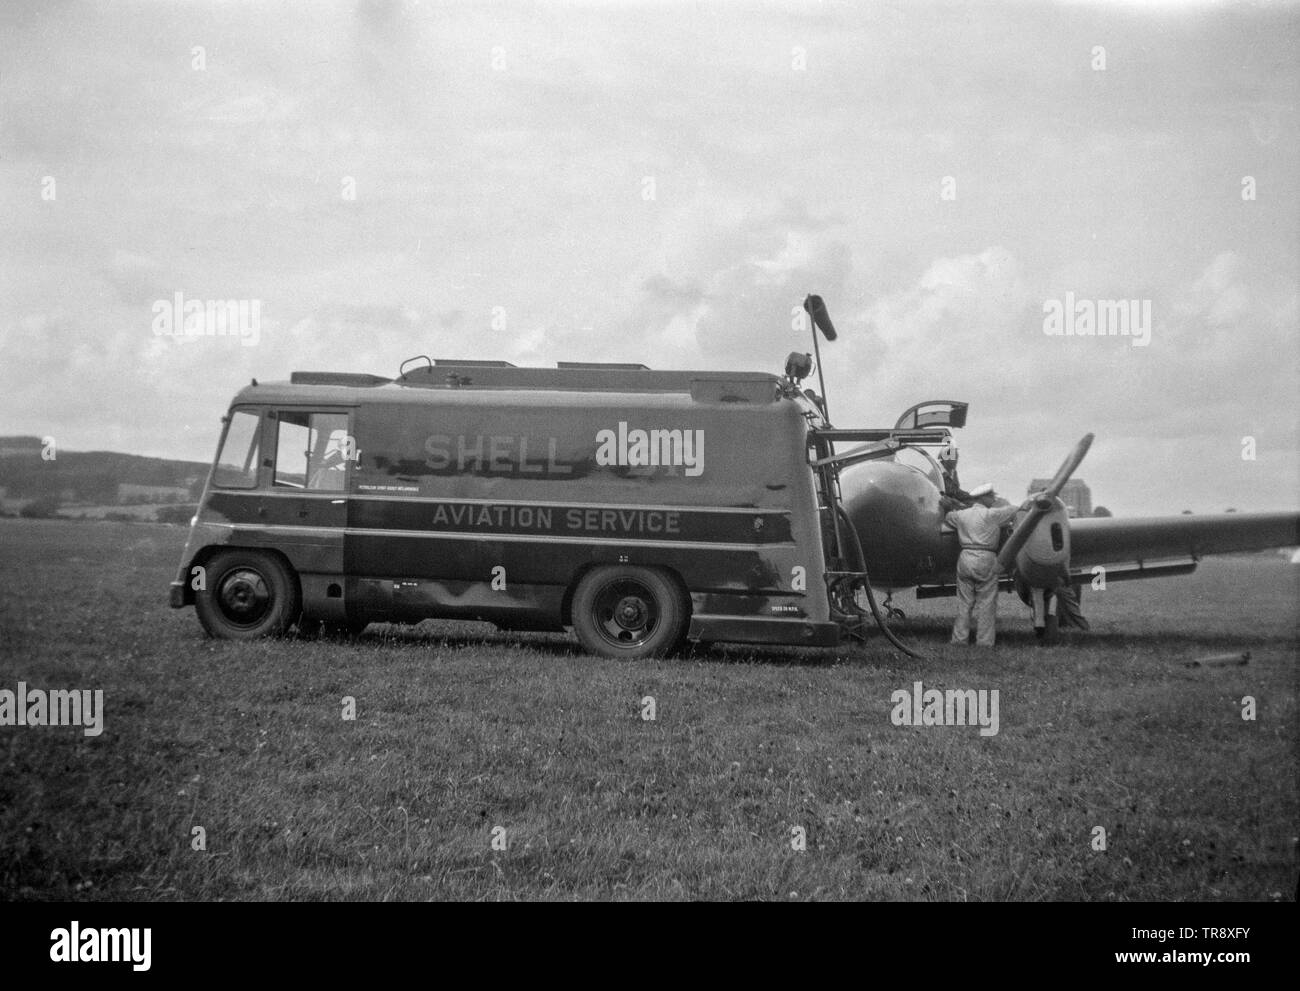 A Miles Gemini Twin Engined British Light aircraft, being refilled from an aviation fuel tanker belonging to Shell Aviation. Vintage black and white photograph taken in the 1950s. - Stock Image